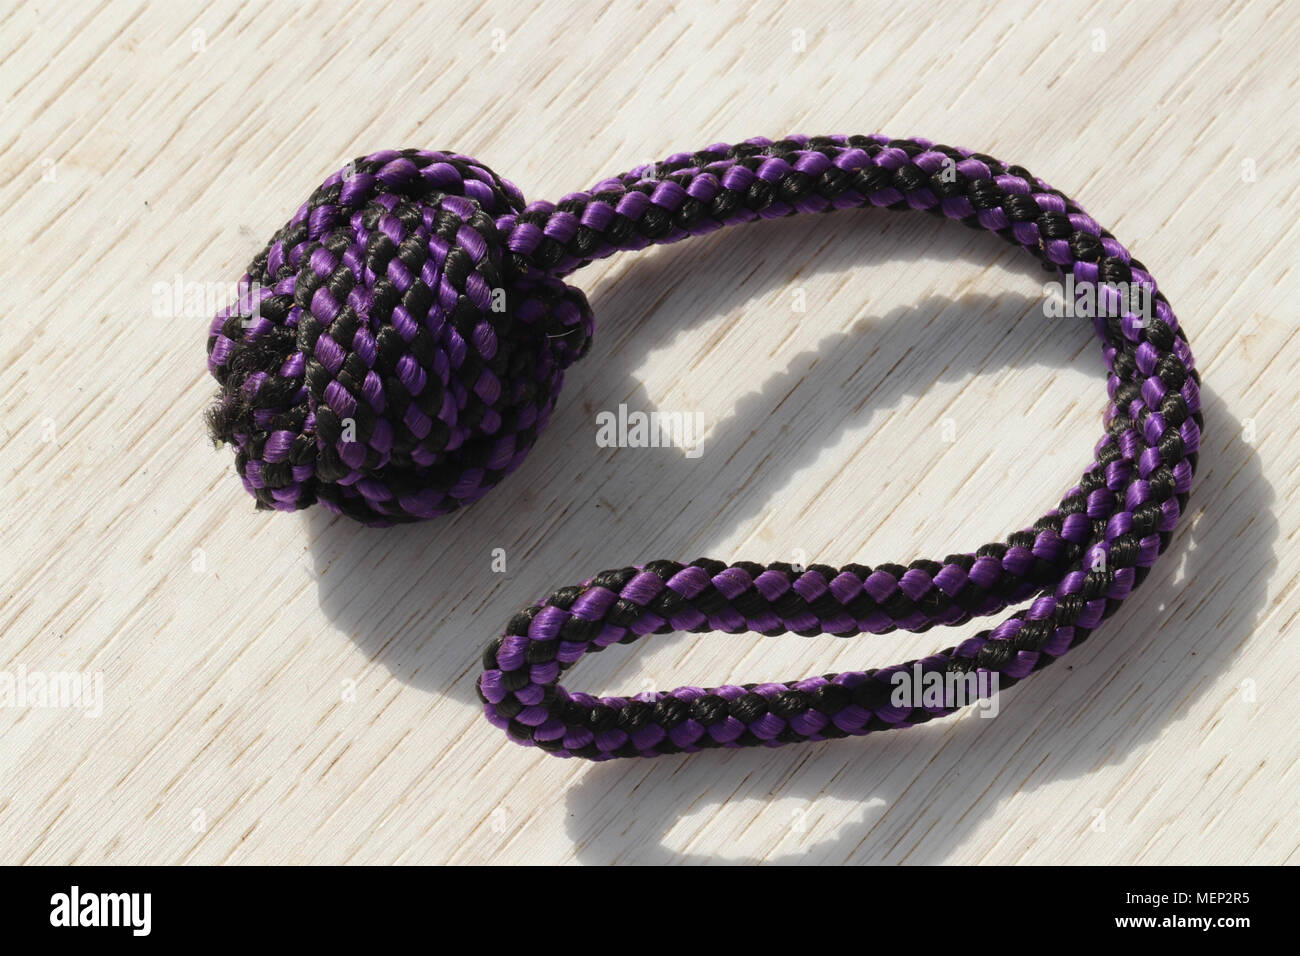 close up of knotted rope dog toy - Stock Image